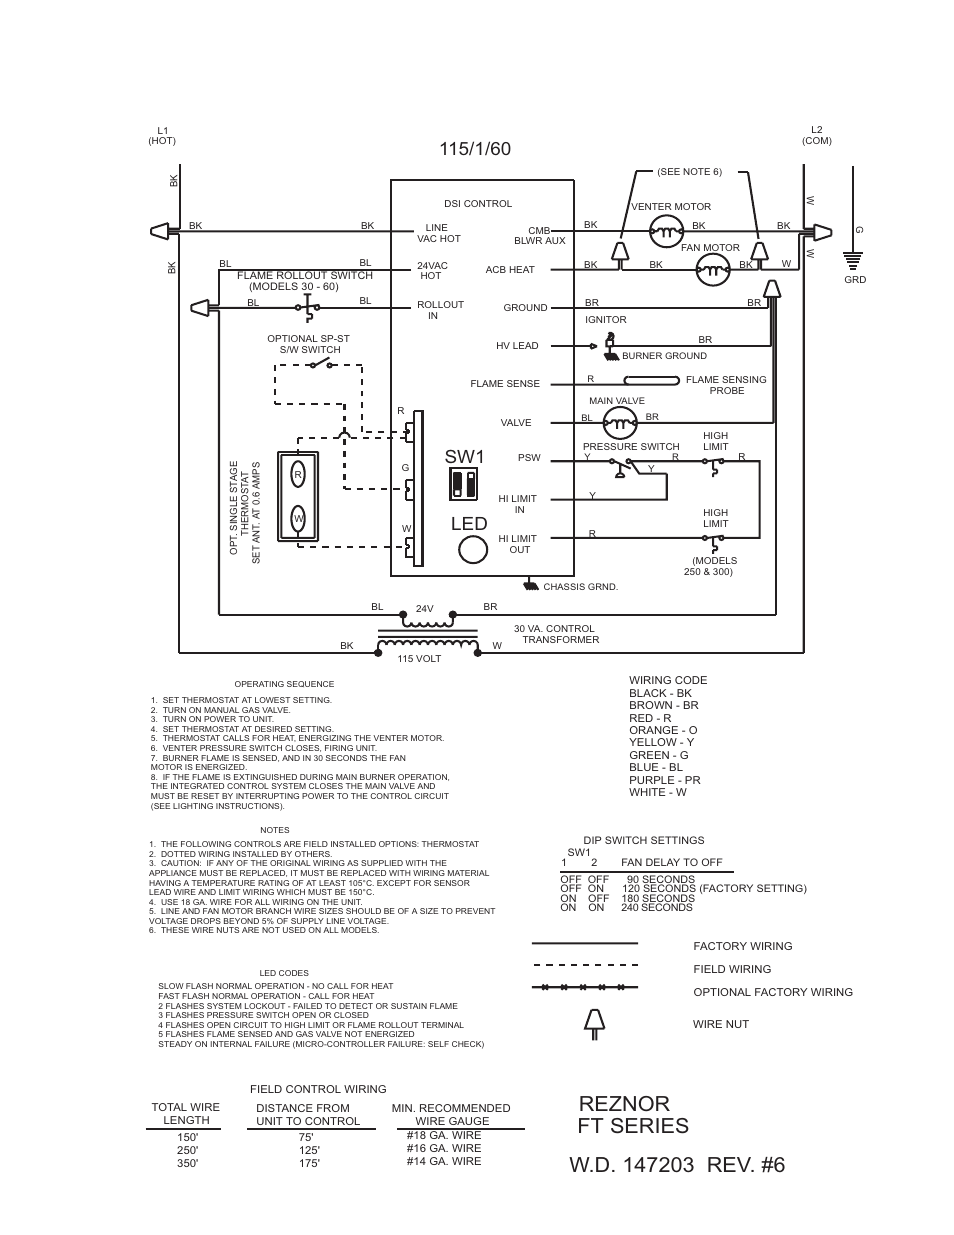 reznor ft unit installation manual page13 reznor furnace wiring diagram reznor wiring schematic oil pump Reznor F100 Wiring Diagram at crackthecode.co